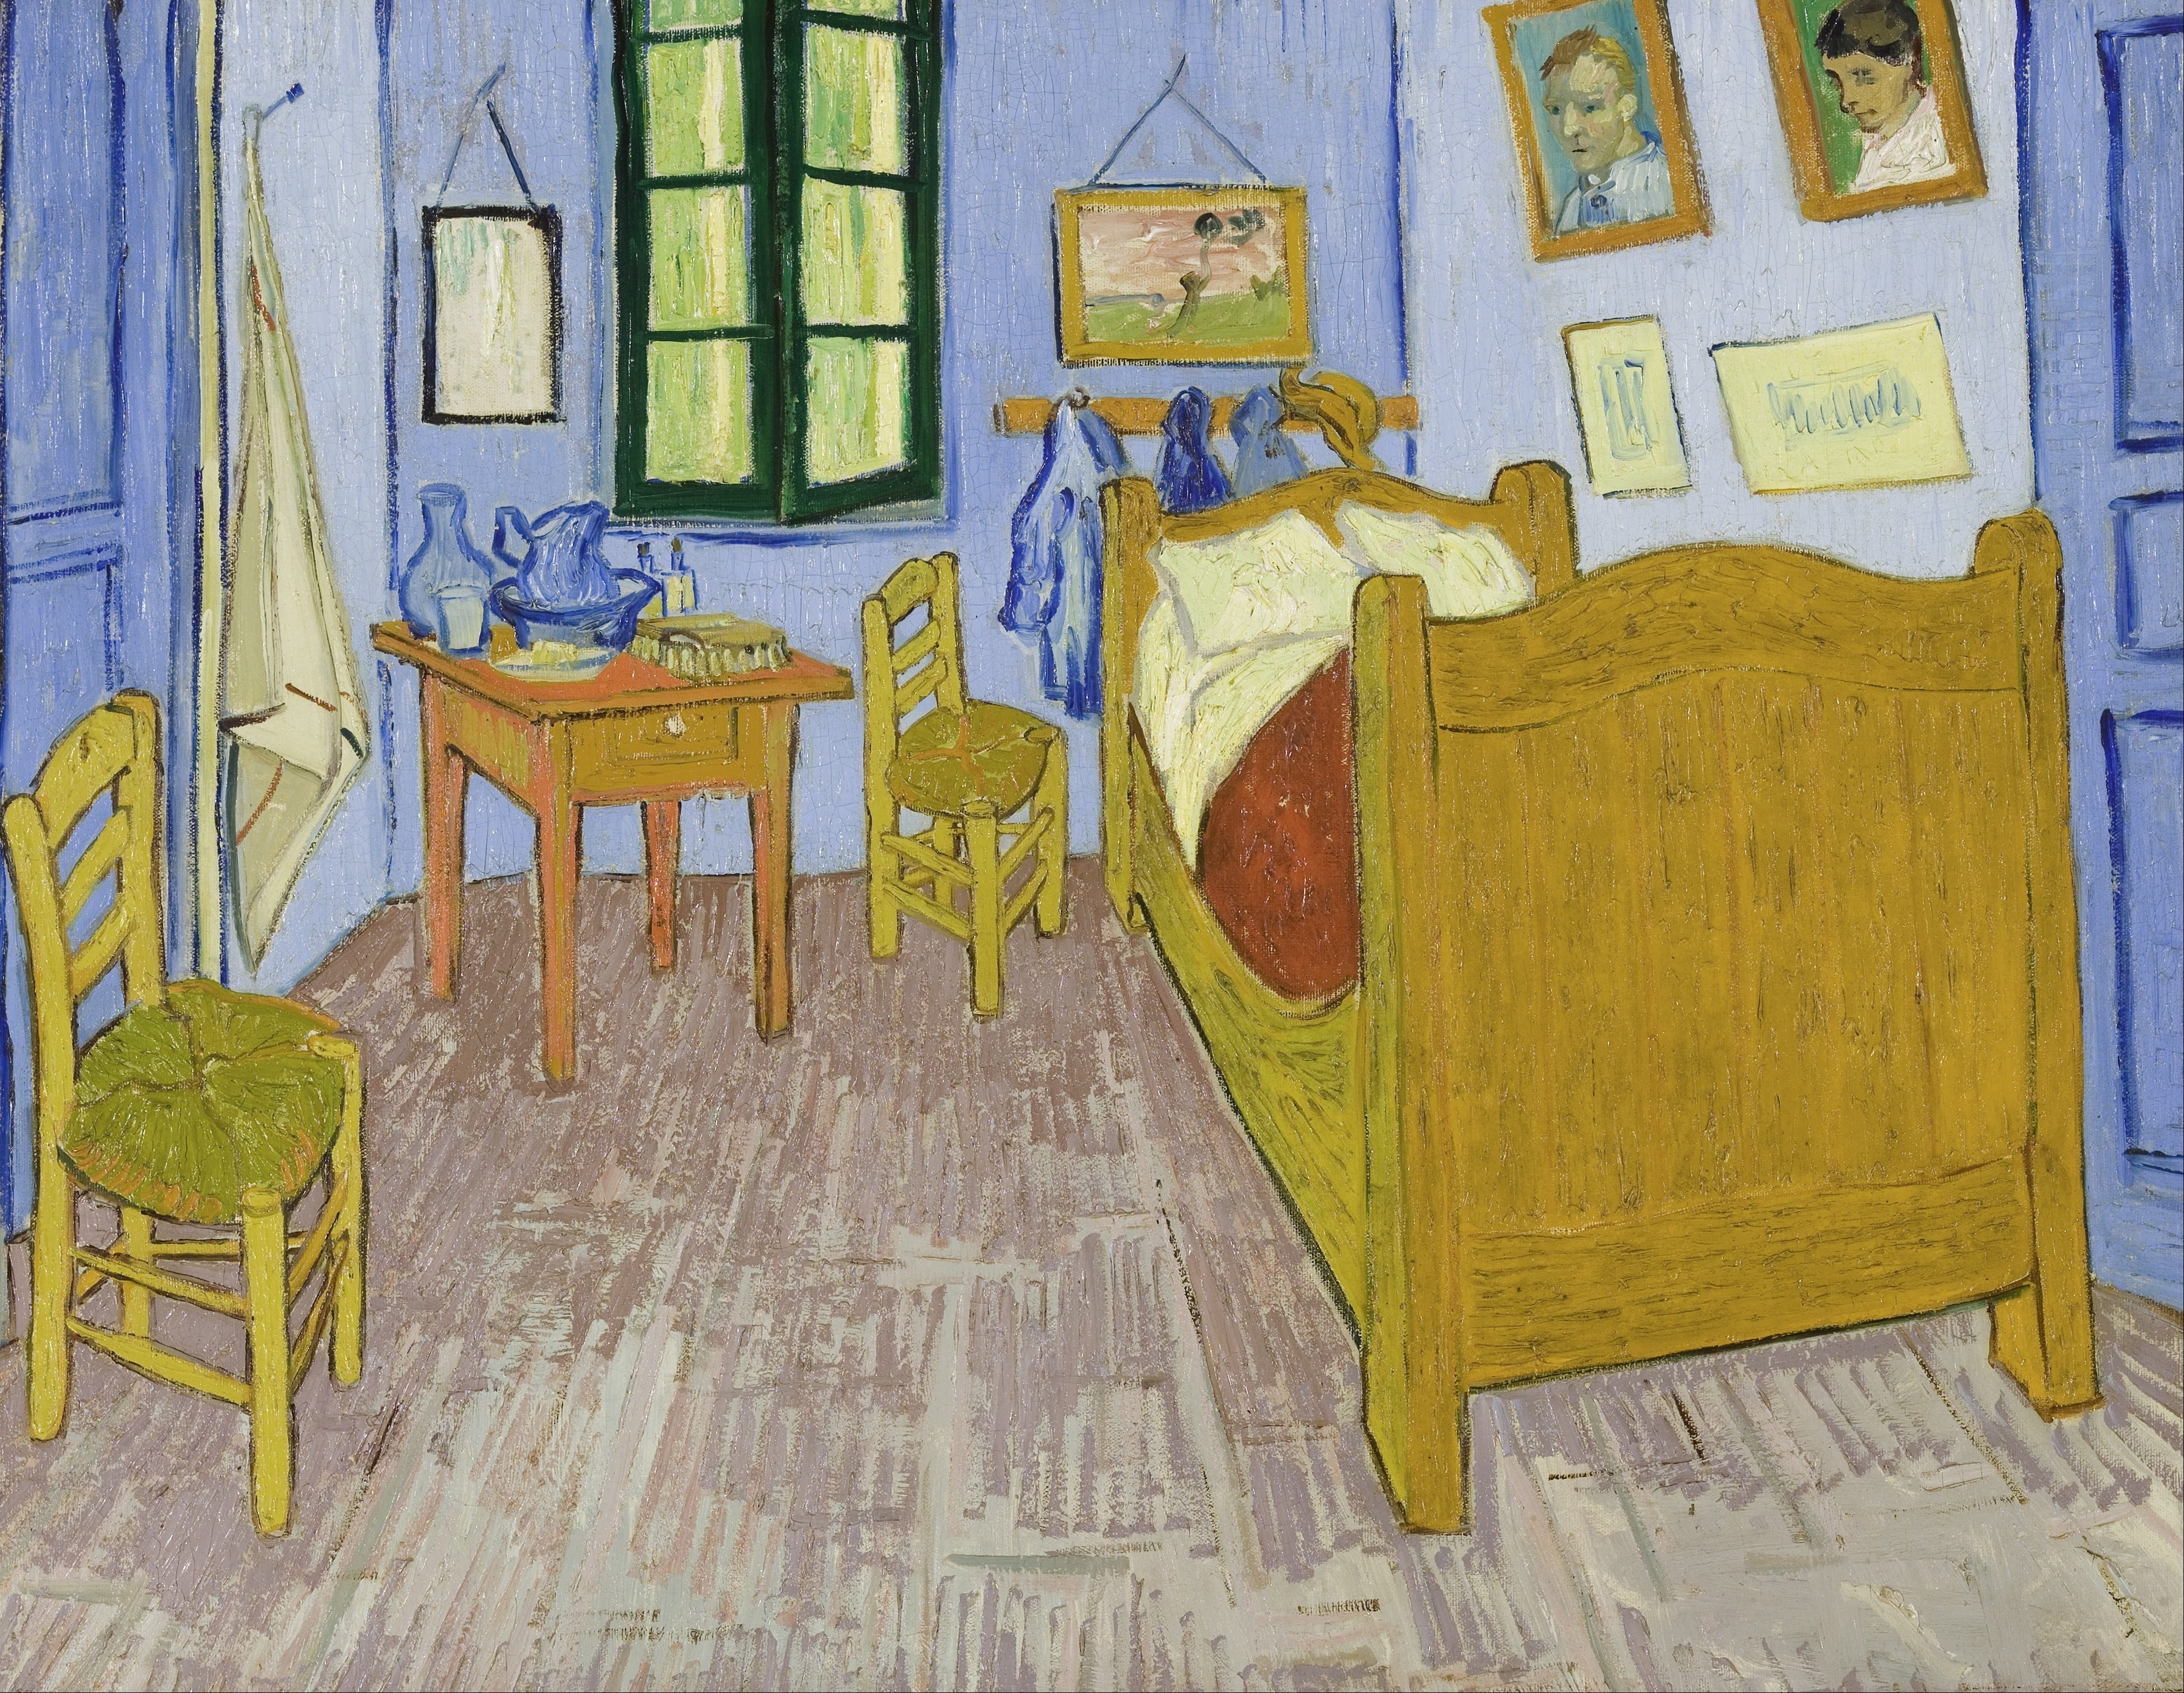 Vincent_van_Gogh_-_Van_Gogh's_Bedroom_in_Arles_-_Google_Art_Project